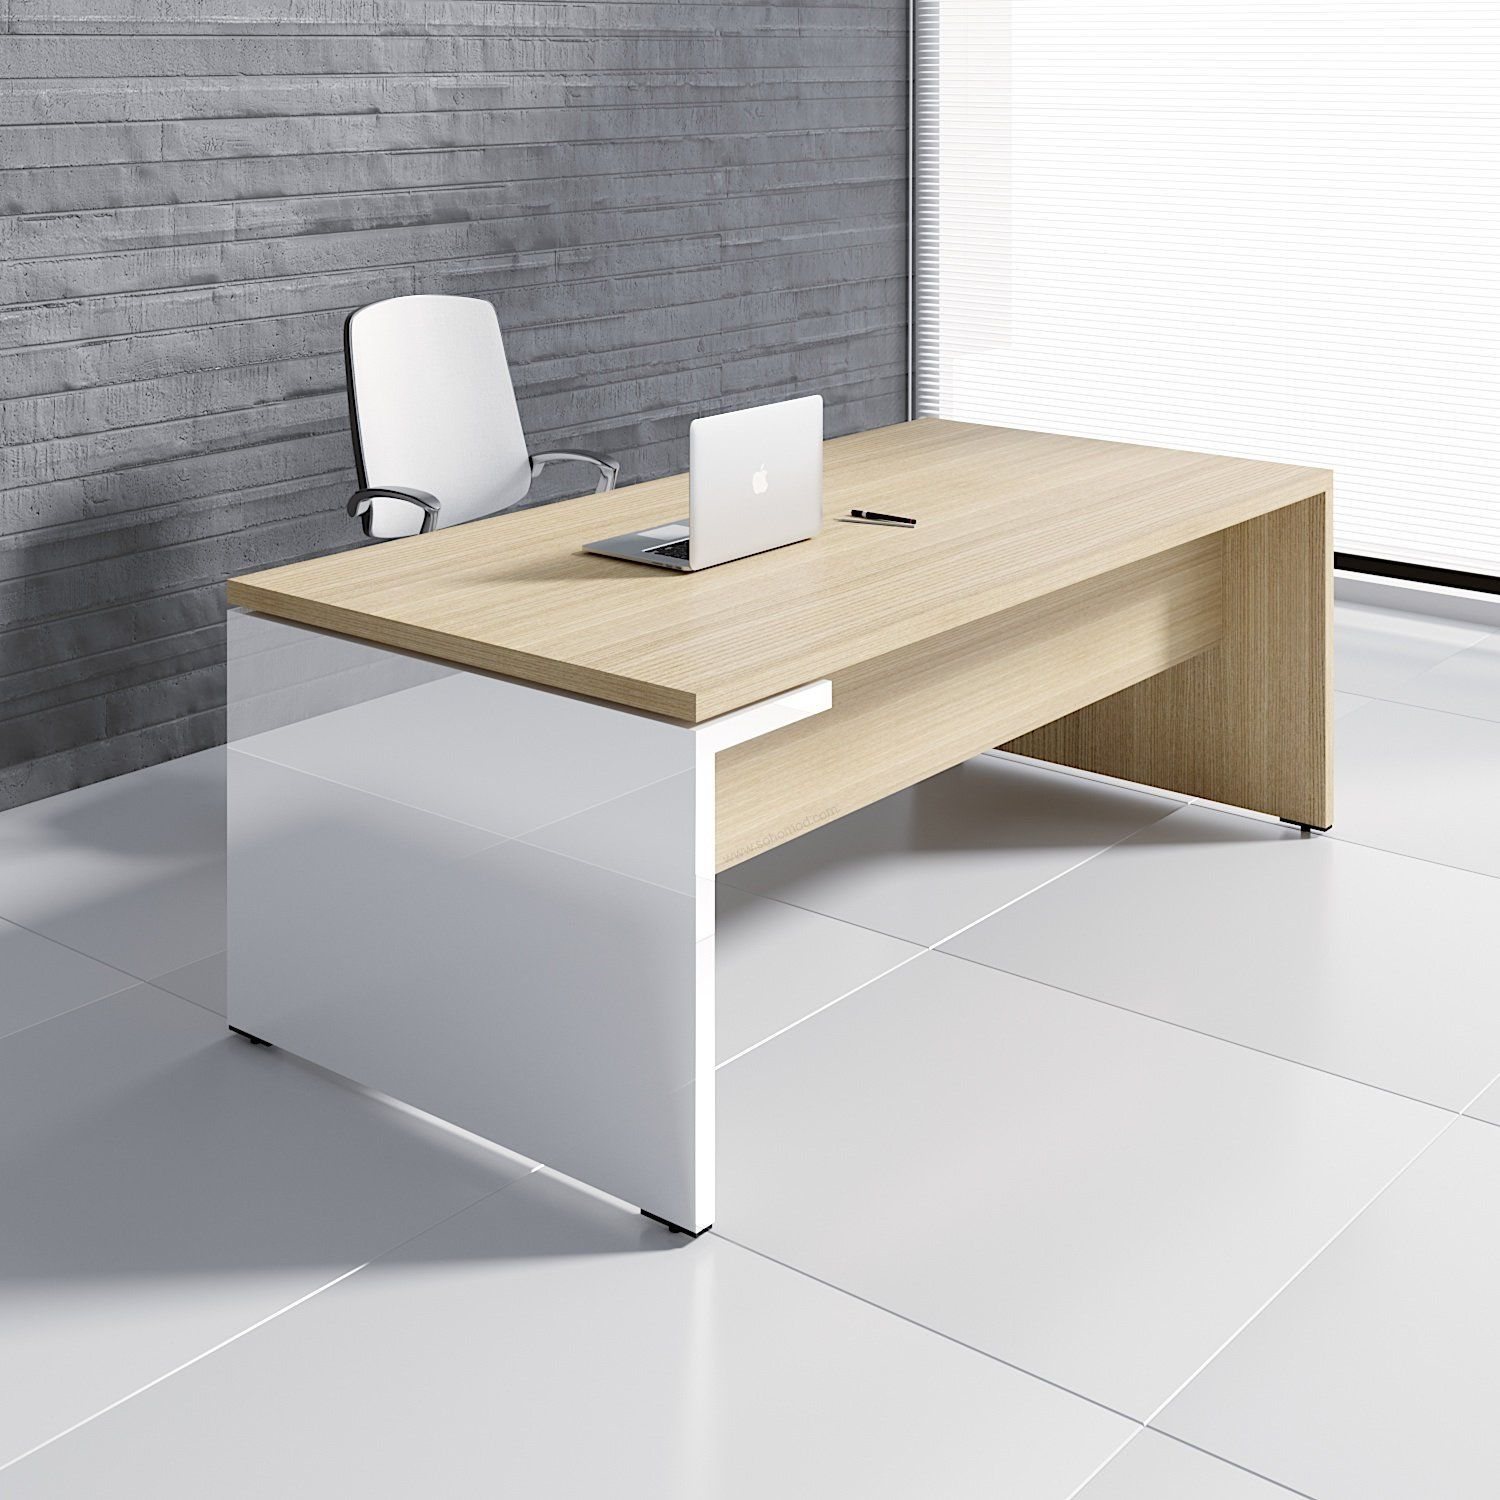 Mito Executive Desk W Hpl Side Panel Office Furniture Design Office Table Design Home Office Design